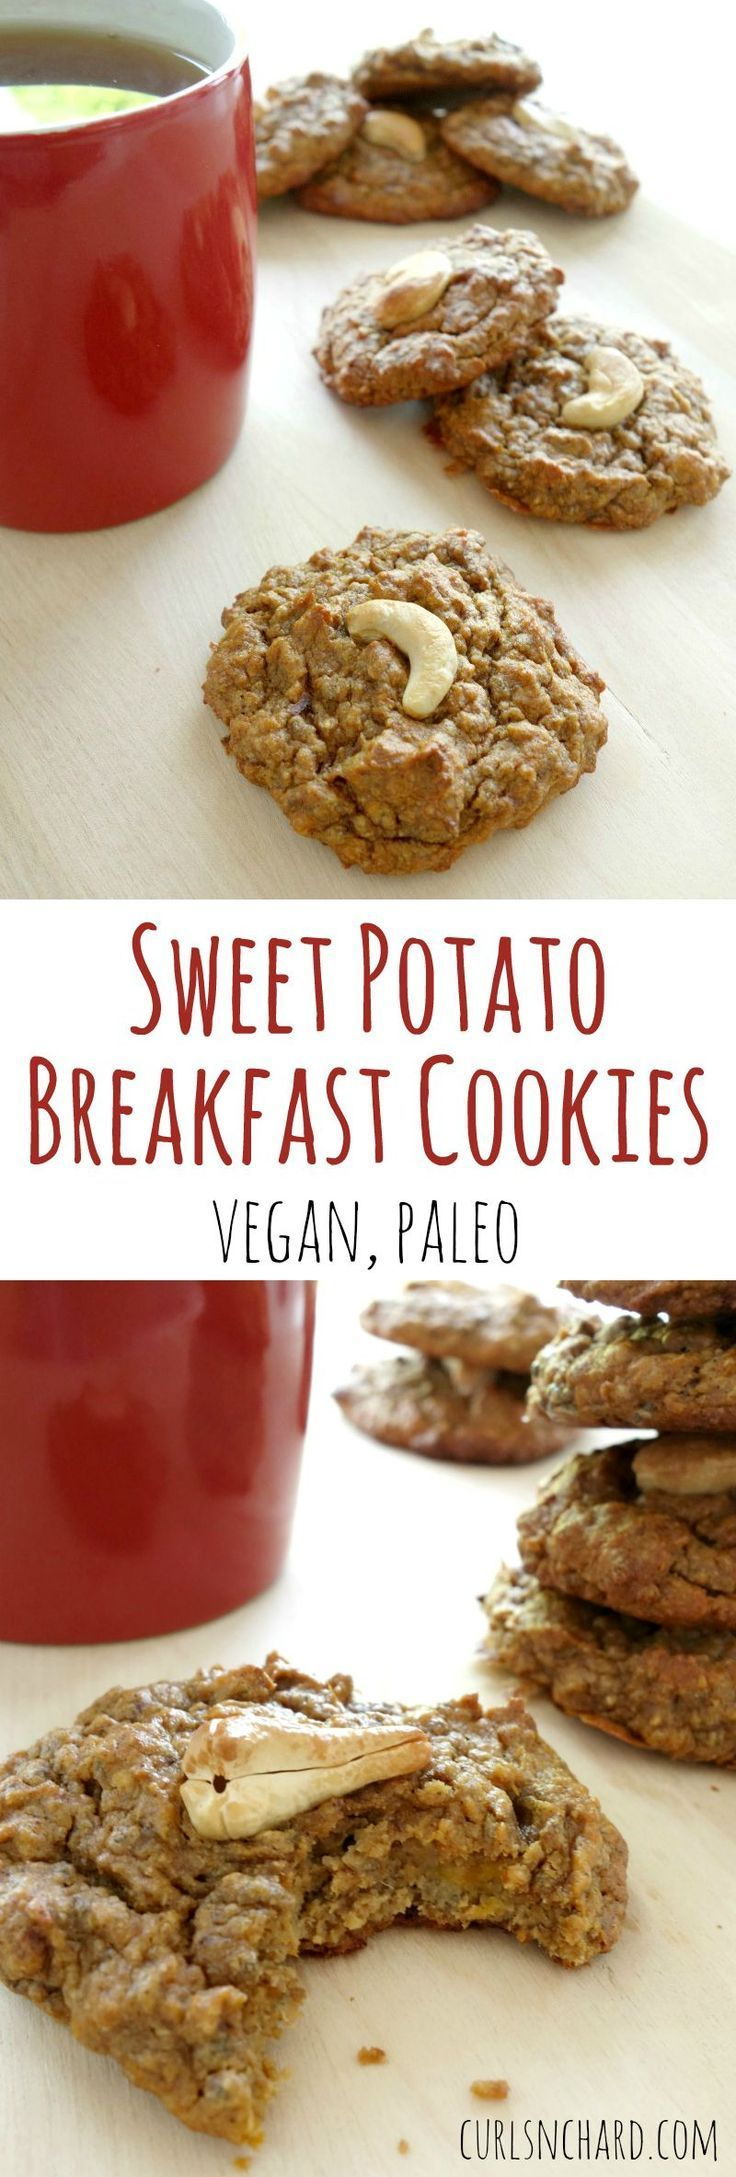 Cookies for breakfast? Yes you can! Those vegan, paleo sweet potato breakfast cookies are free from refined sugar and flour, but full of taste!